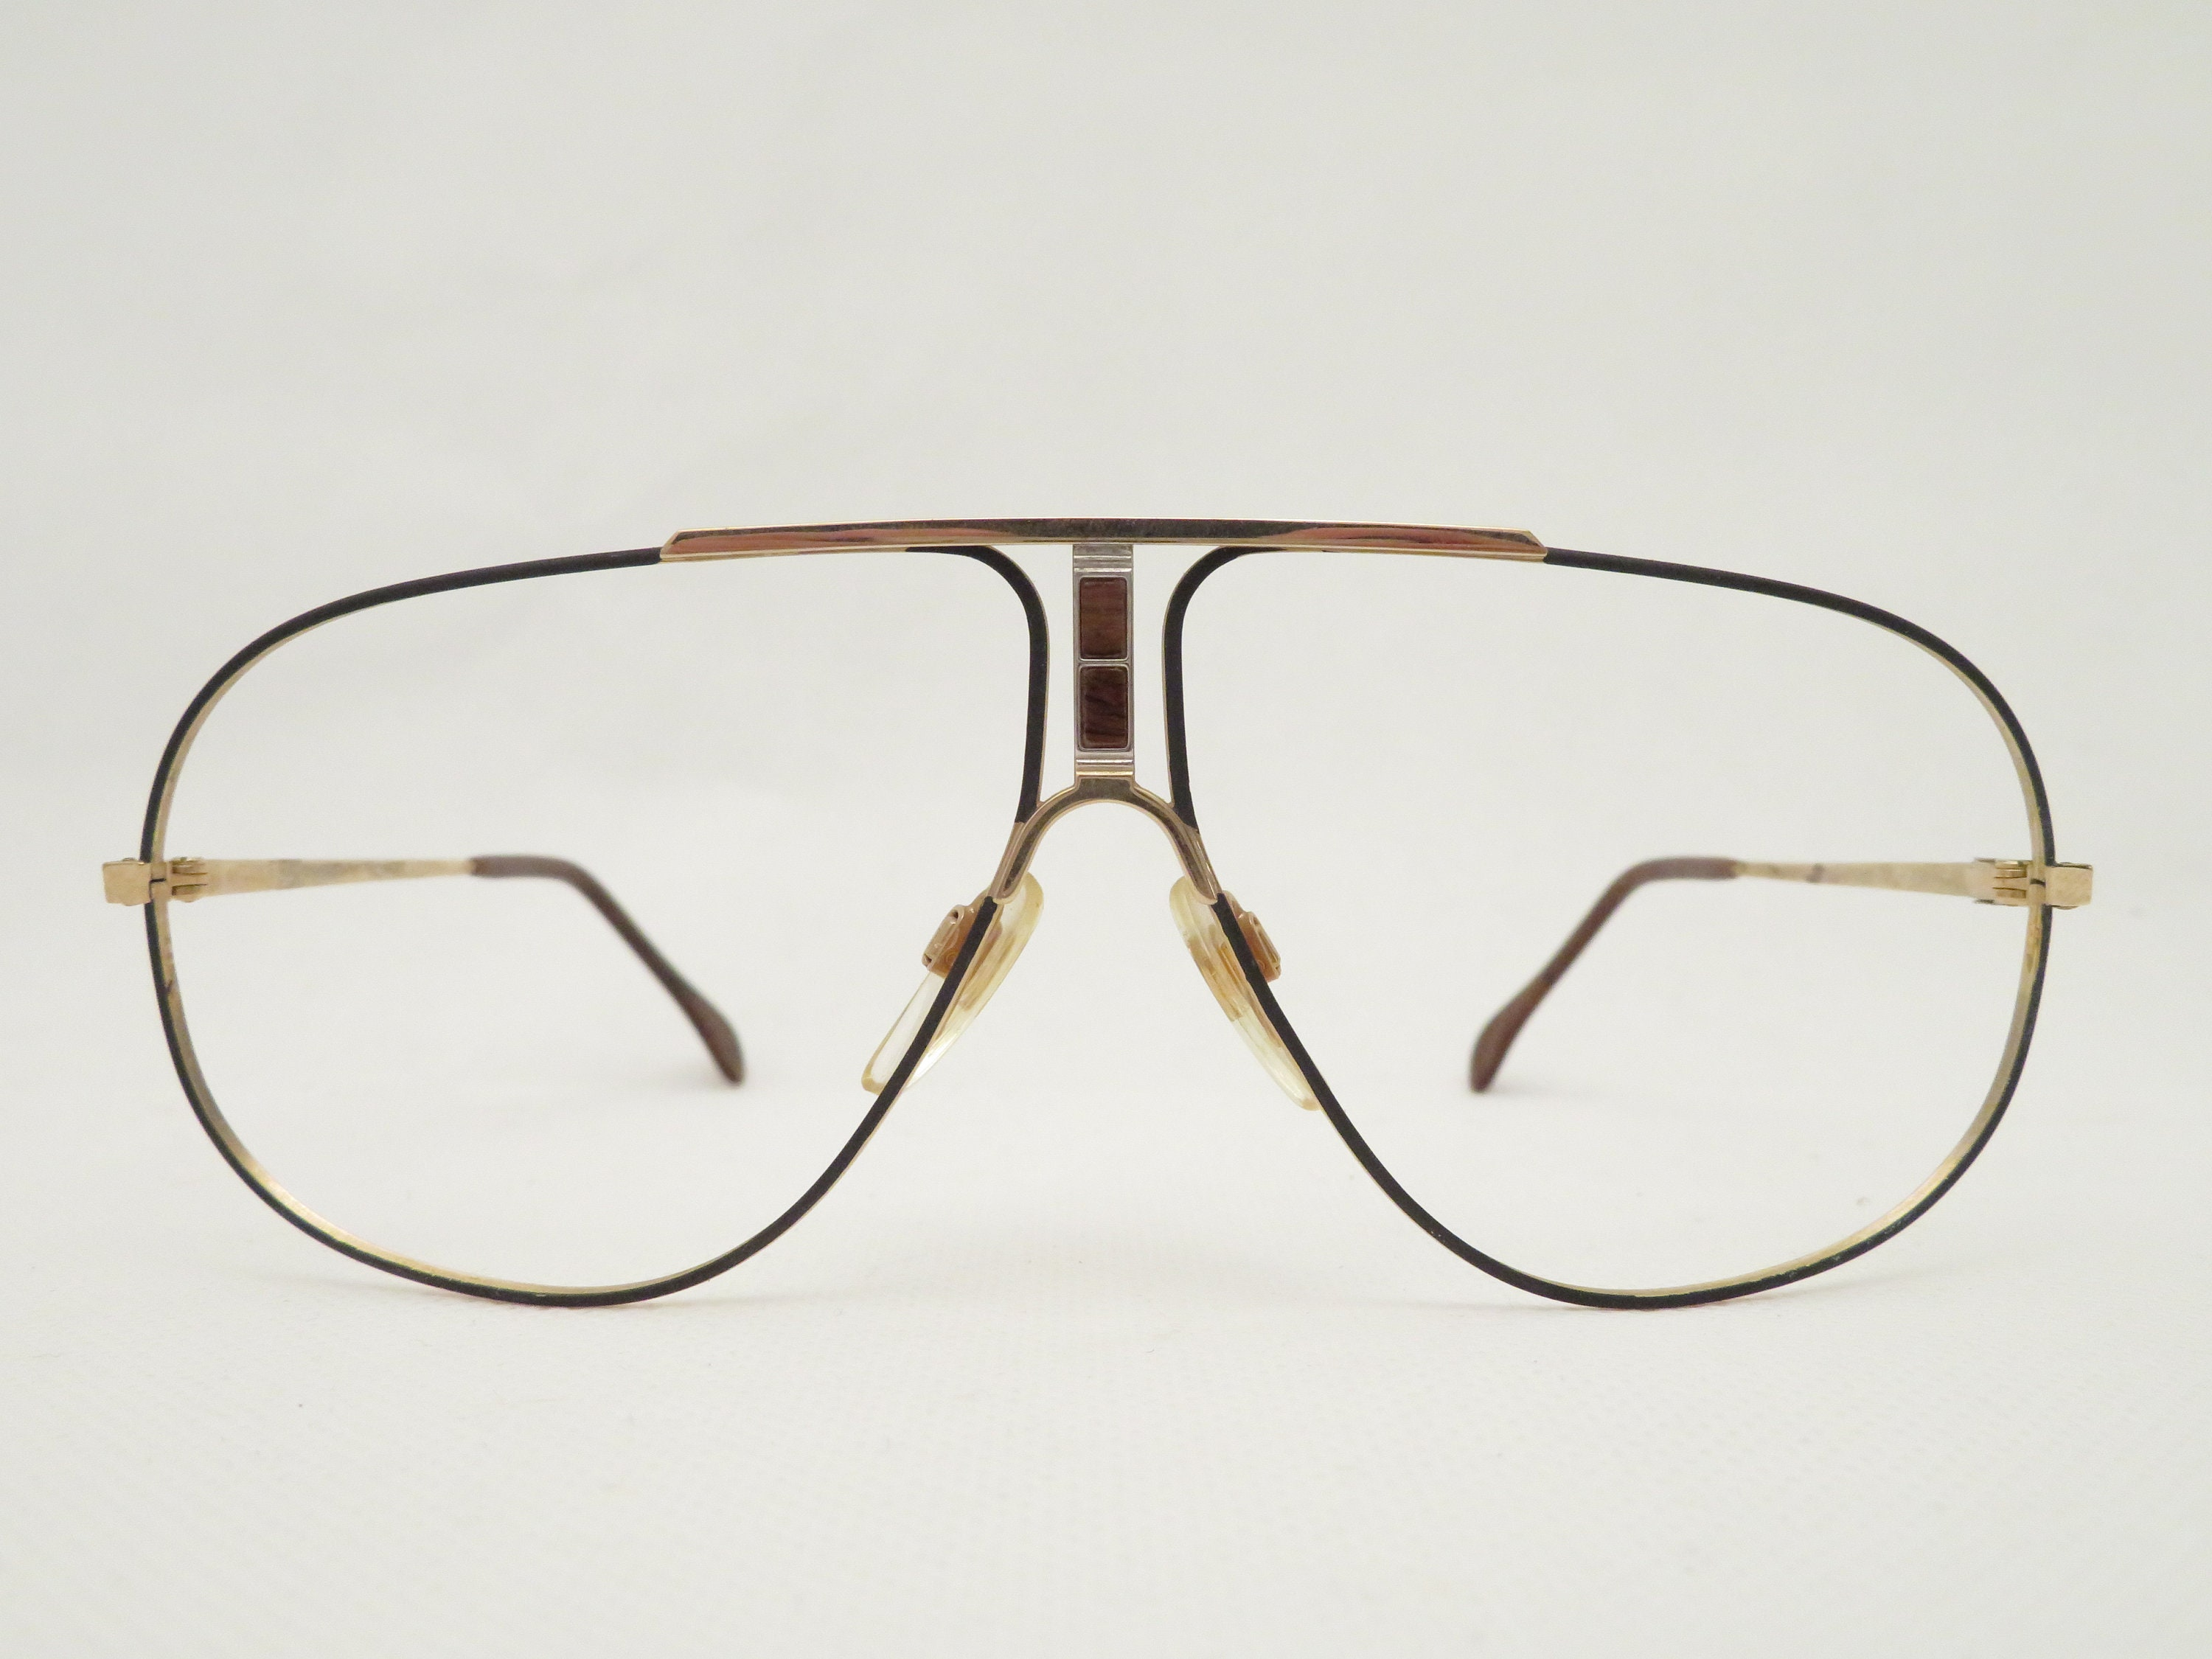 42a2030c9d35 Vintage jaguar mens glasses eyeglass frame from the etsy jpg 3000x2250  Glasses from the 80s